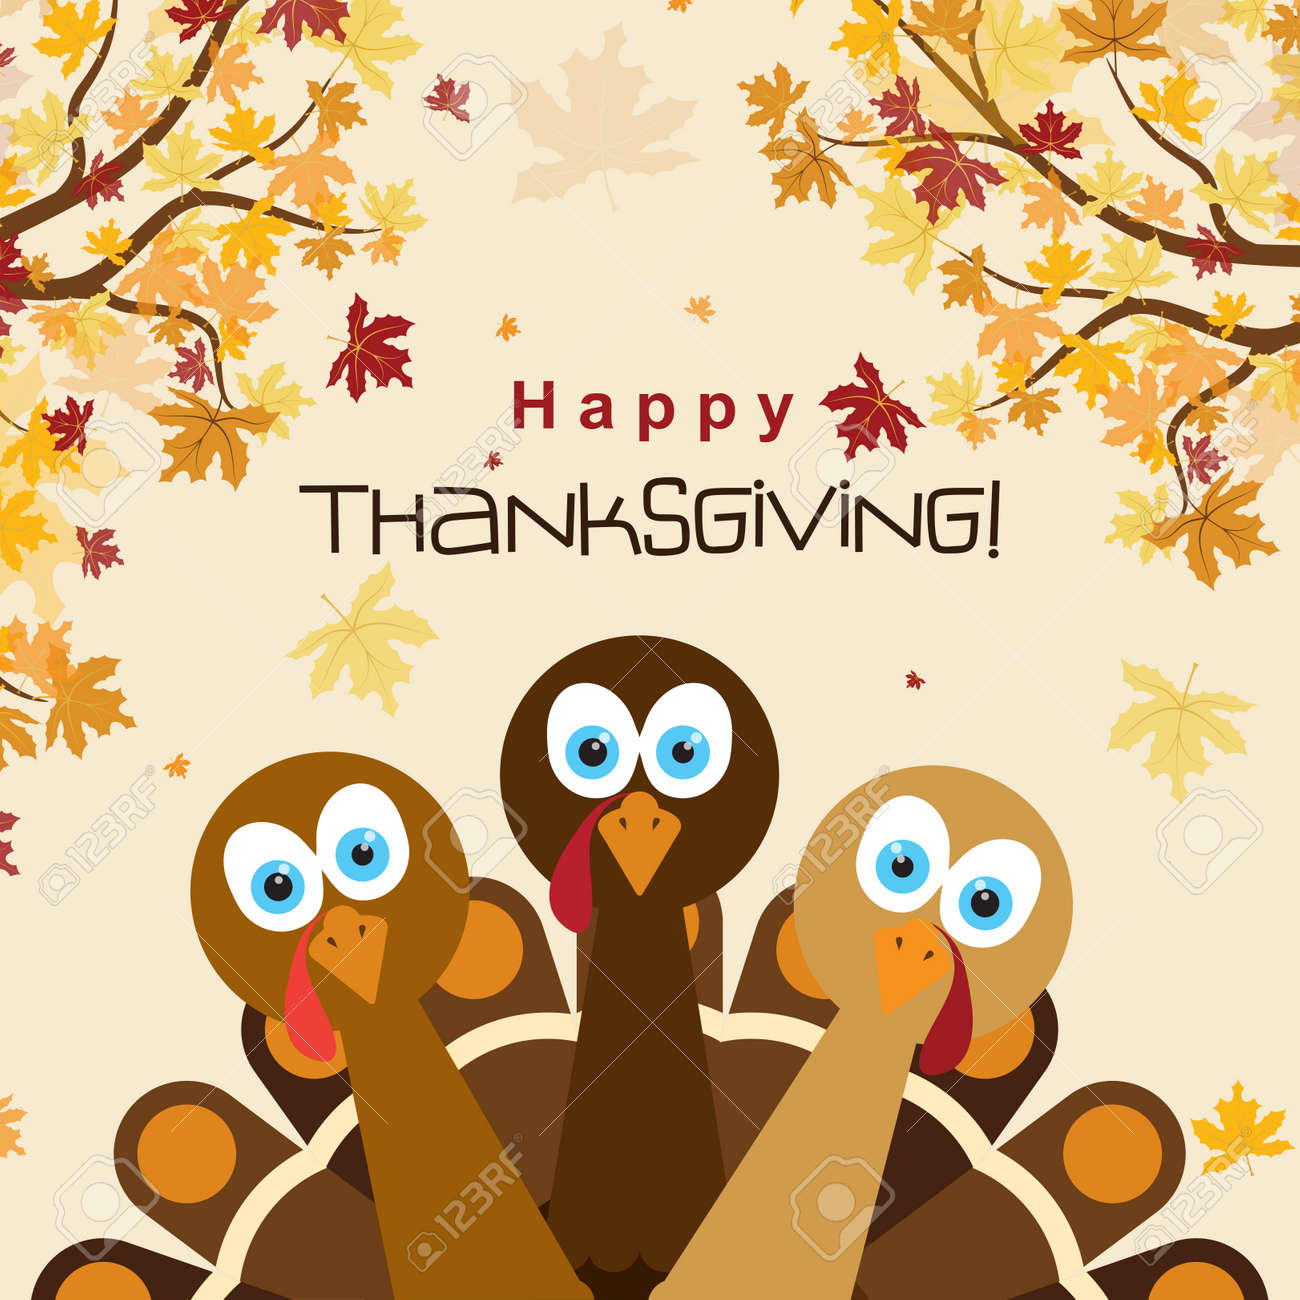 Template Greeting Card With A Happy Thanksgiving Turkey Vector Illustration